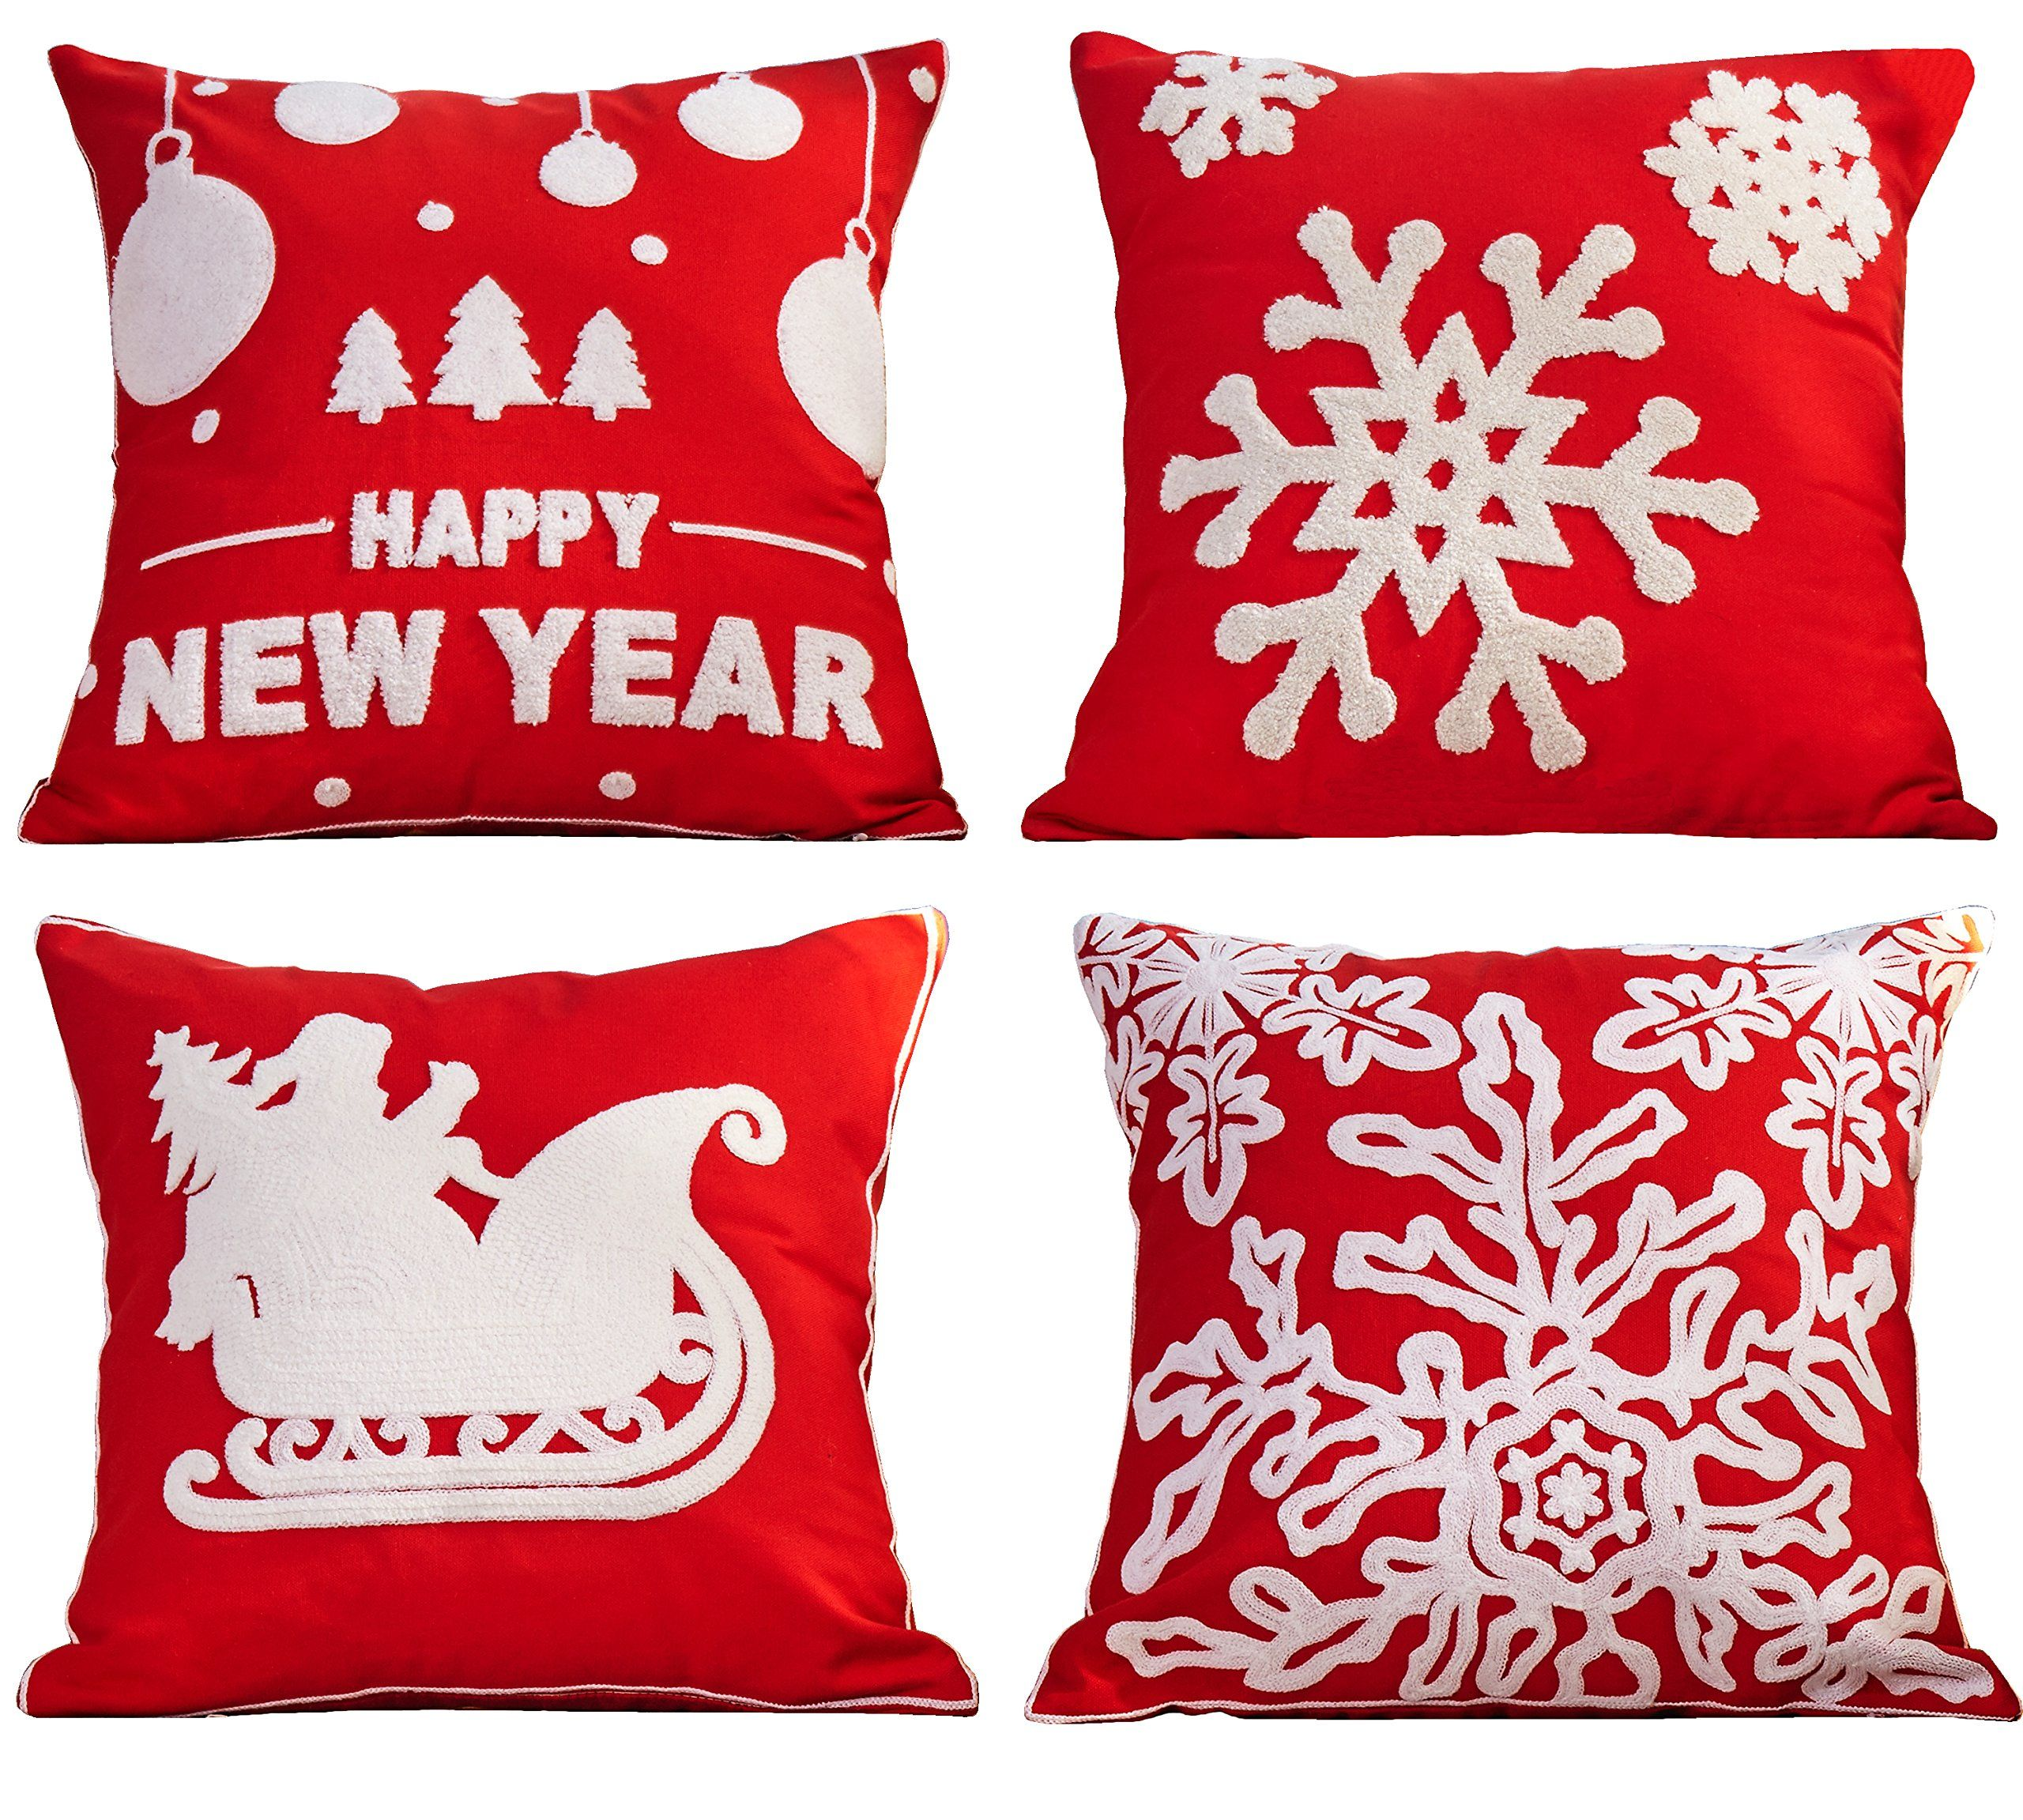 decorative pillow c red tommy on embroidered bahama de wholesale unisex throw price decor janeiro rio pillows canada floral